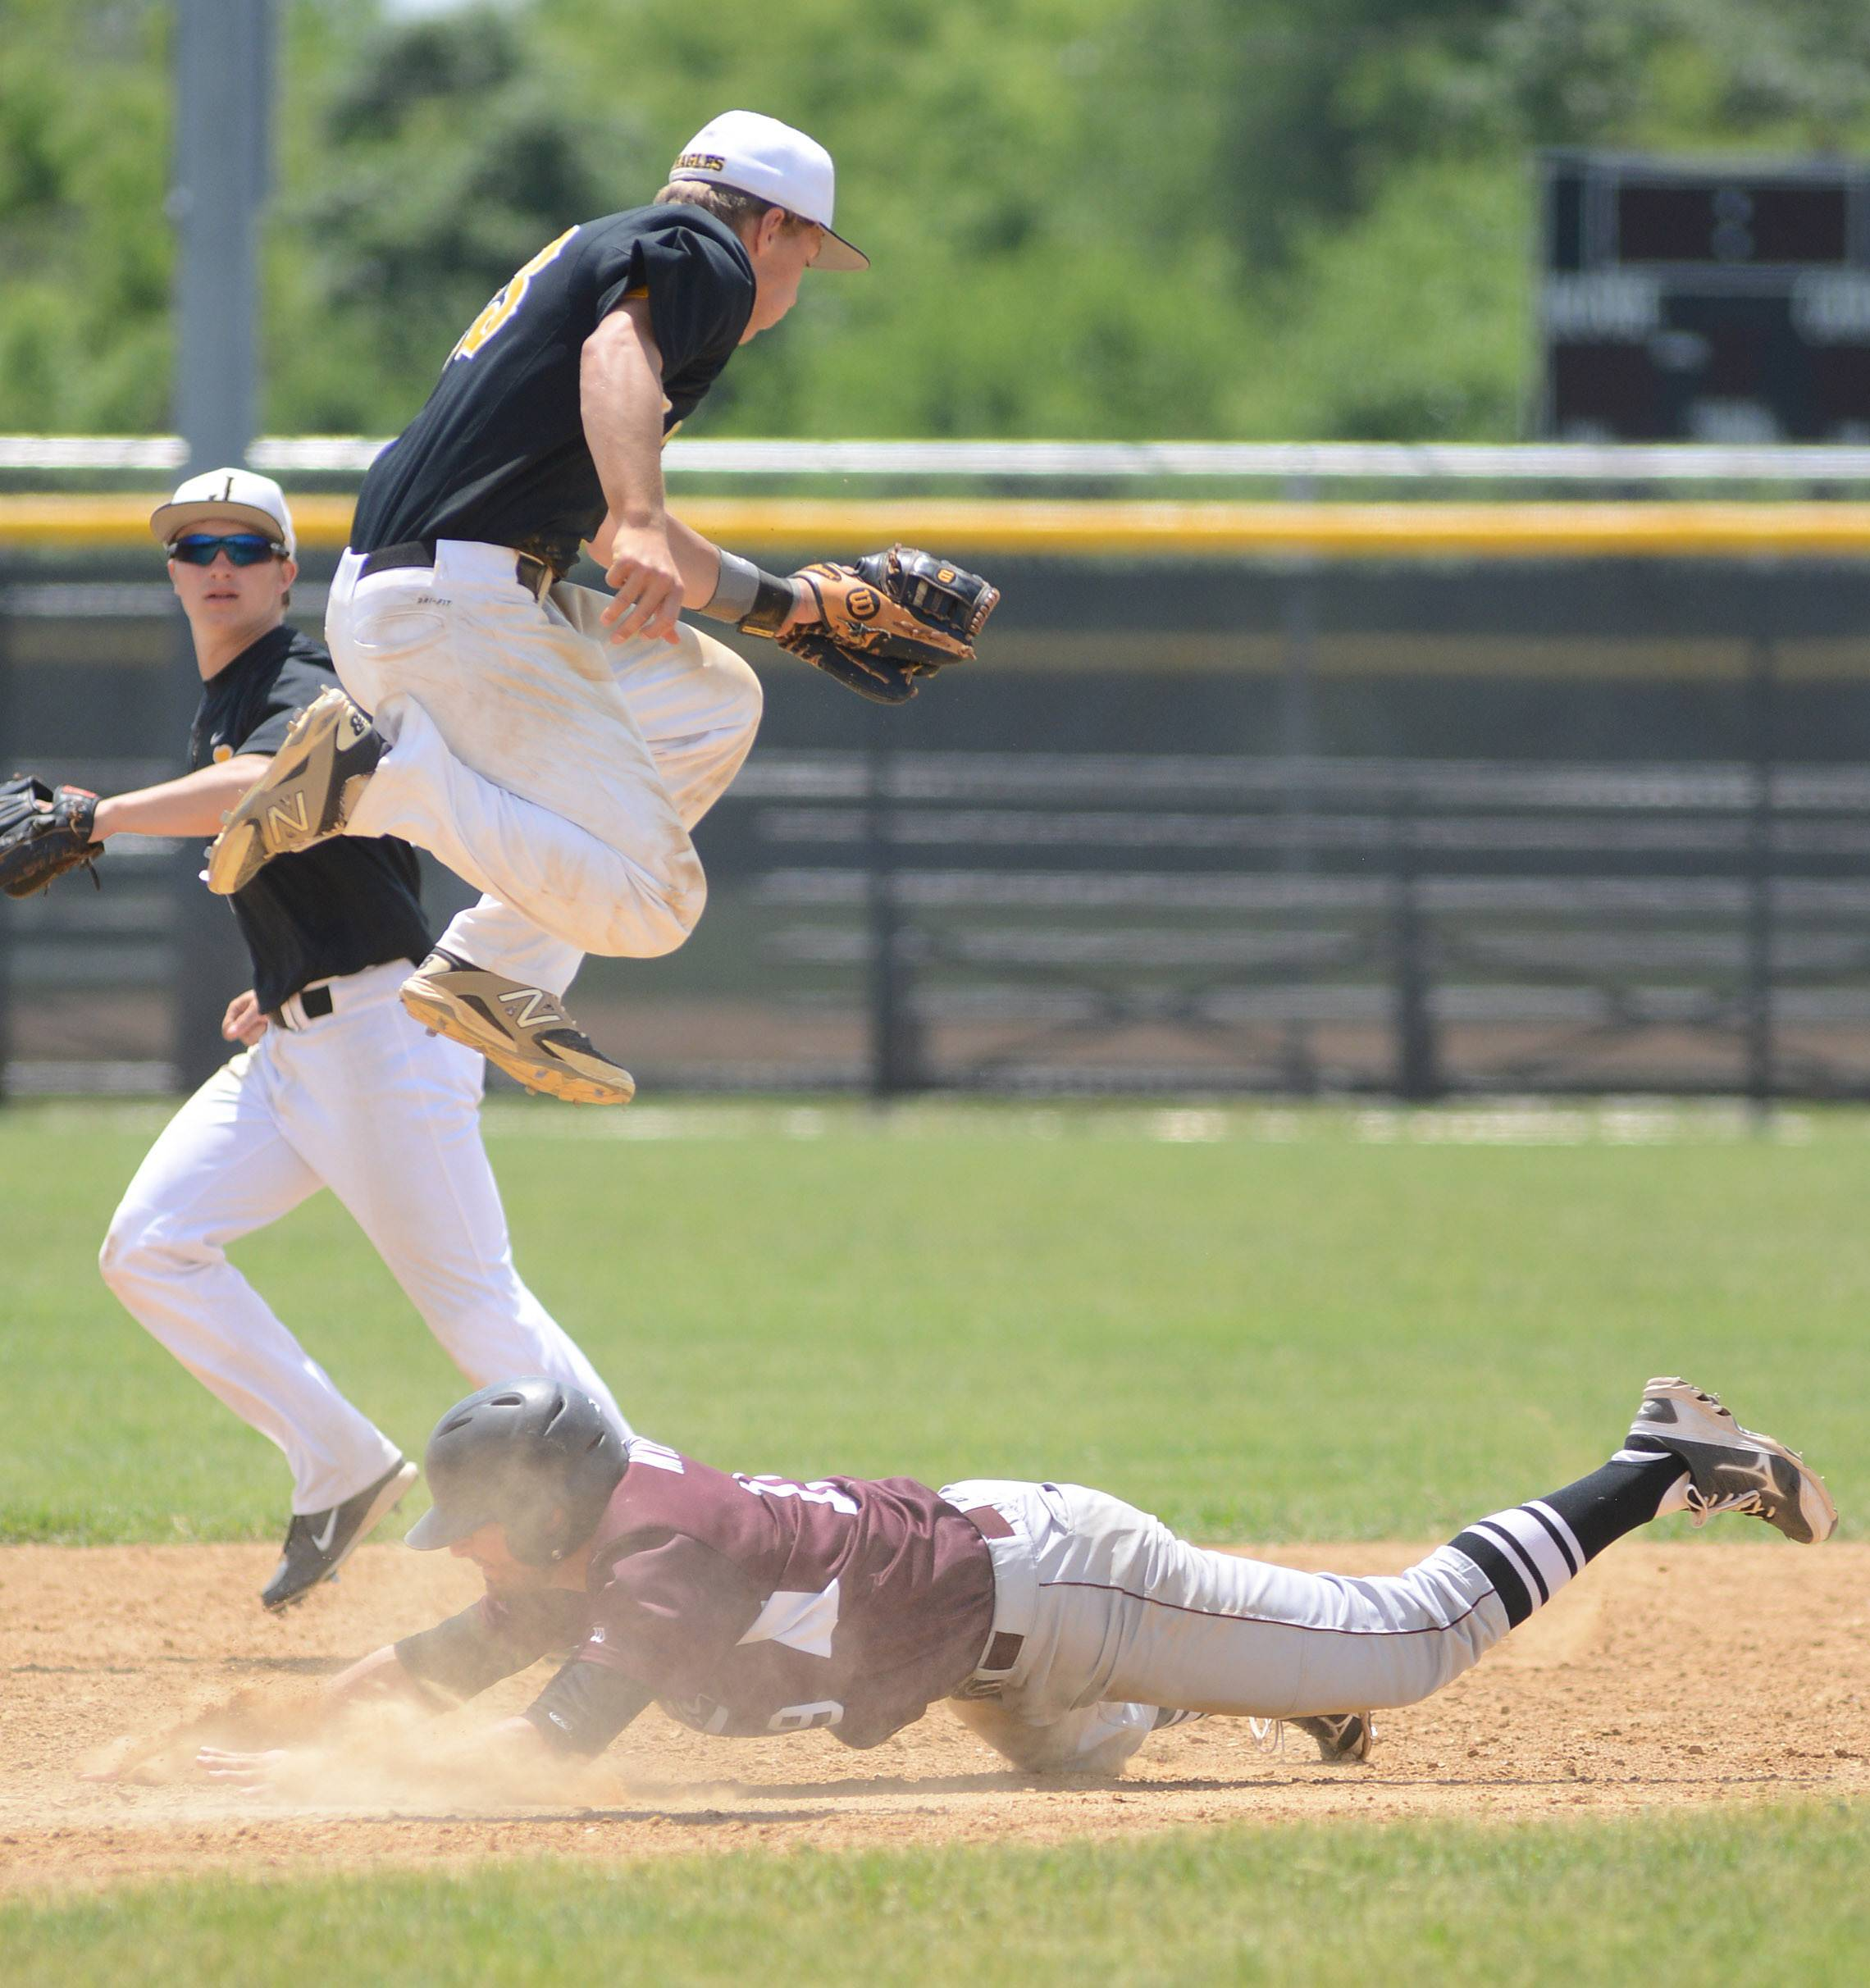 Laura Stoecker/lstoecker@dailyherald.comJacobs' Matt Kozlak leaps to avoid a collision with Prairie Ridge's John Myers as he slides safely into second base in the fifth inning of the Class 4A McHenry sectional championship at Peterson Park on Saturday.